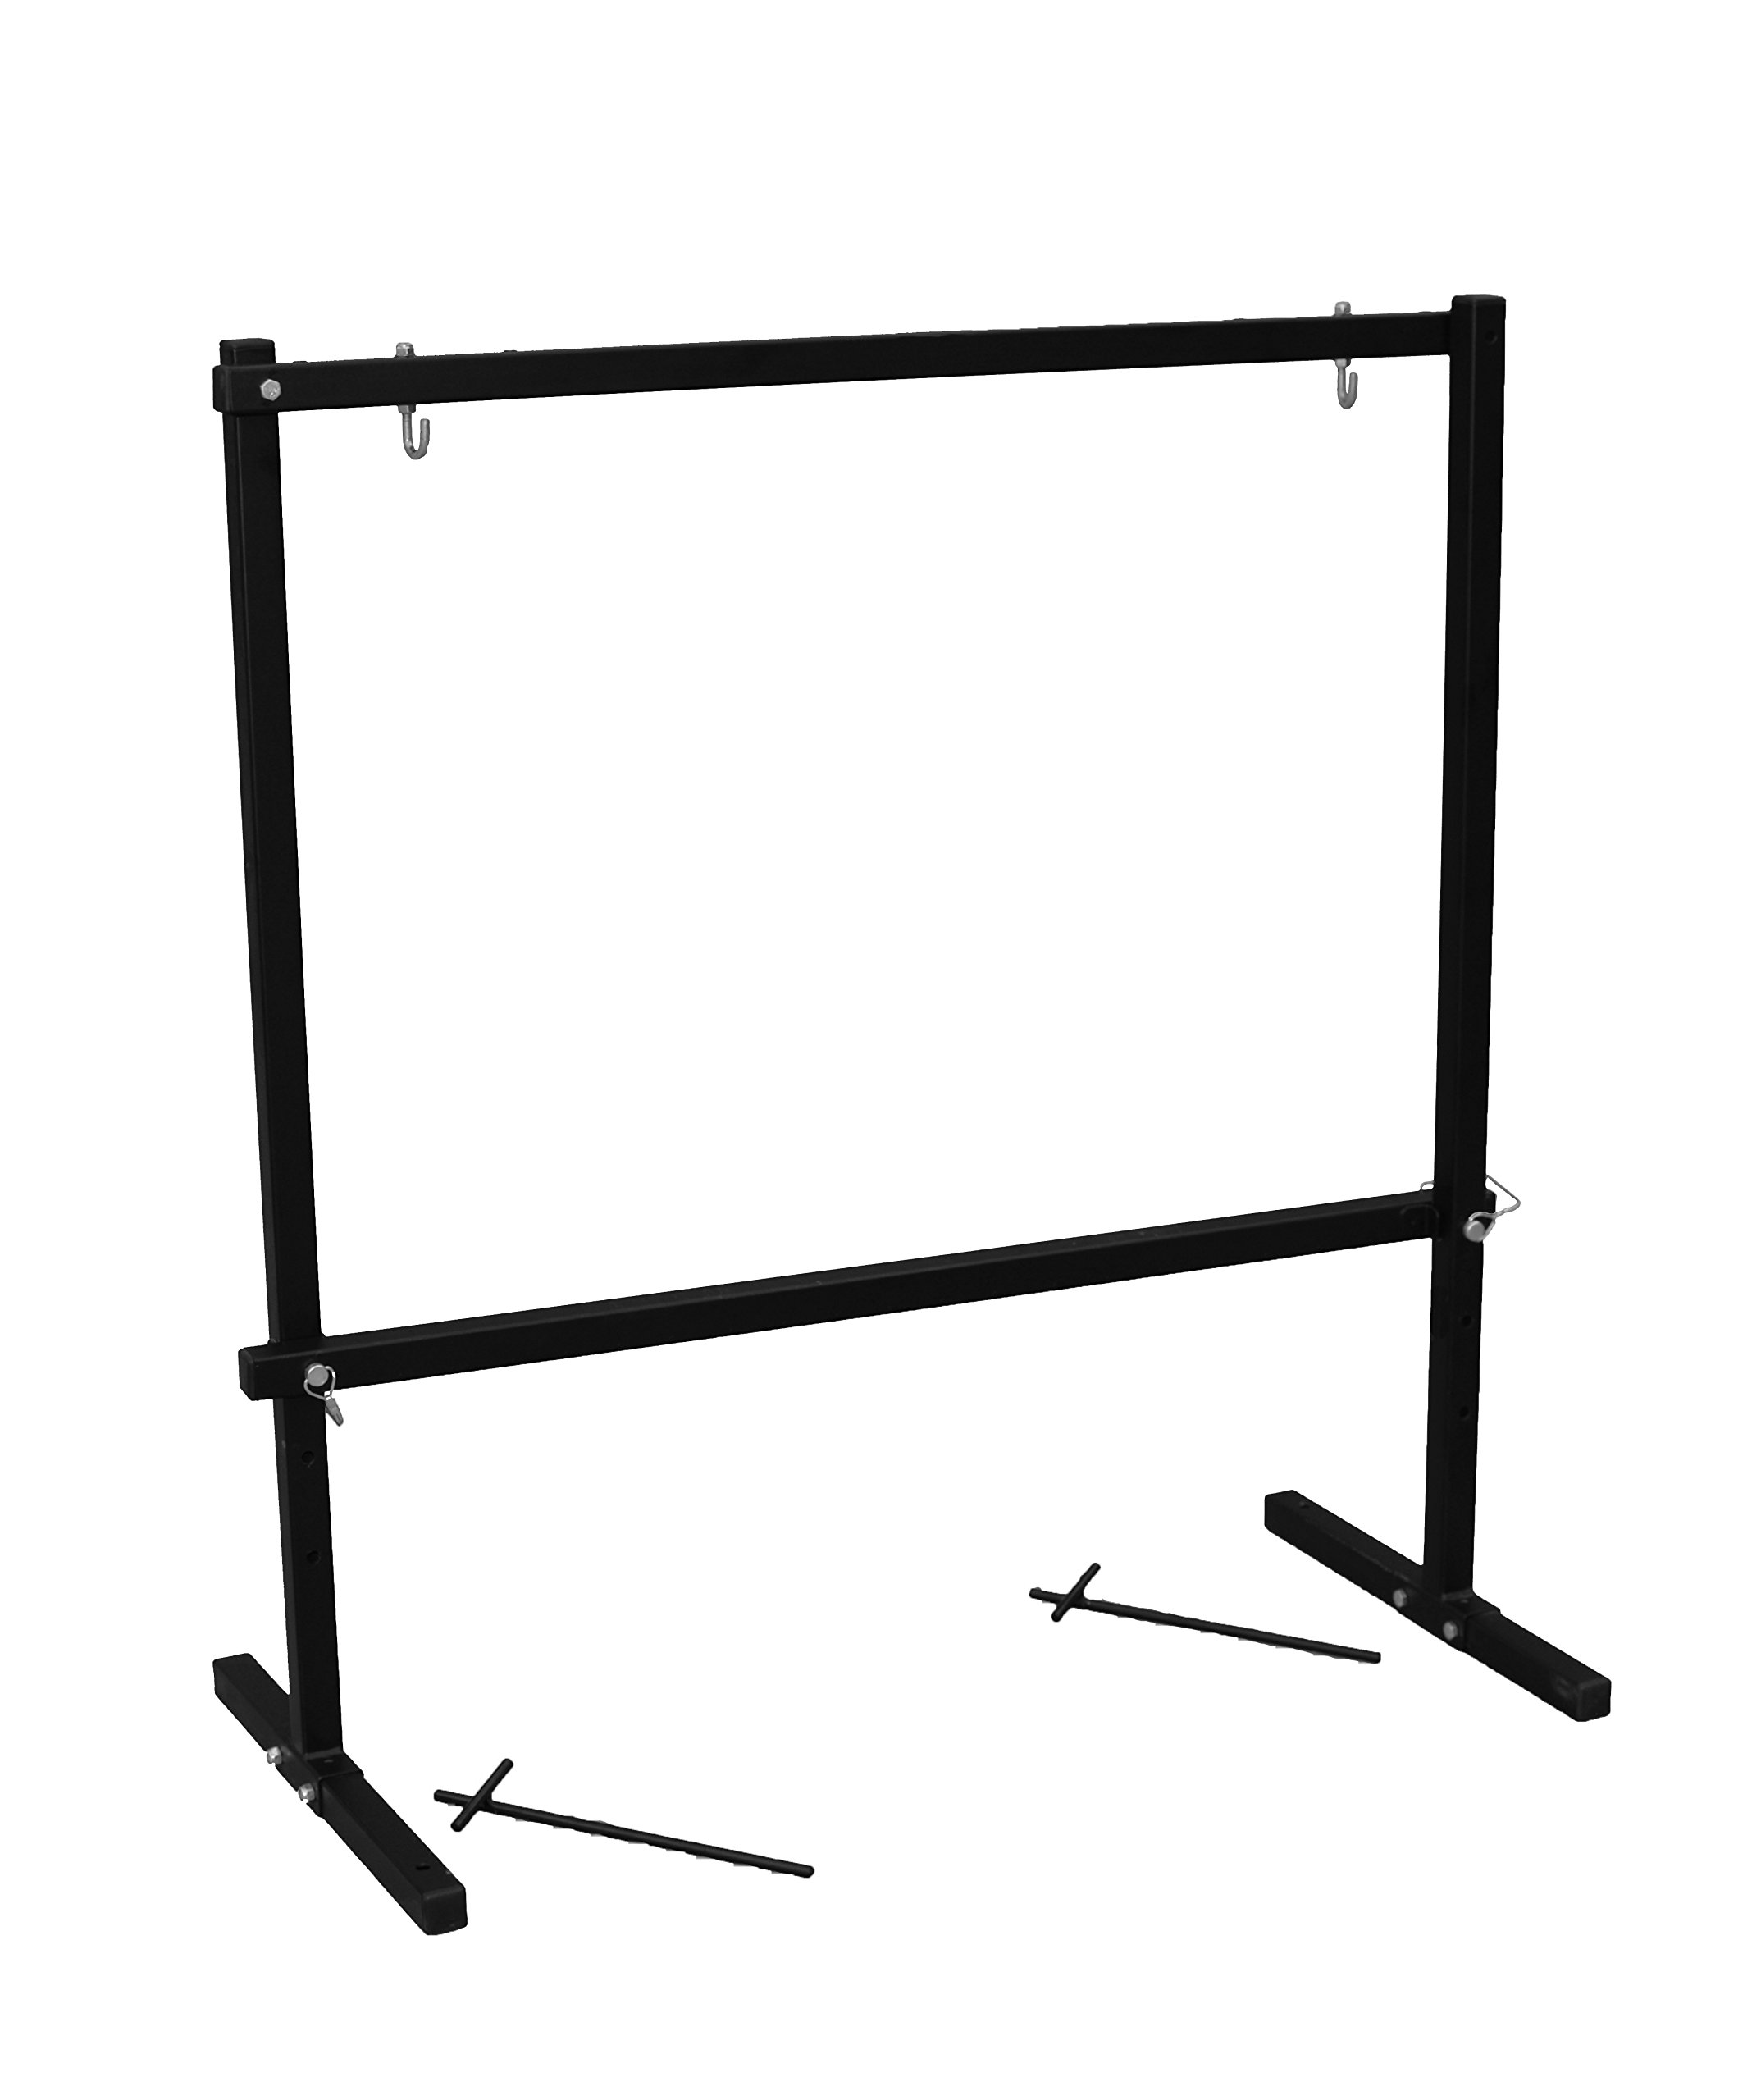 Yellow Jacket Supreme 3 Field Point Target & Bowtree Bag Stand Combo by BowTree (Image #2)